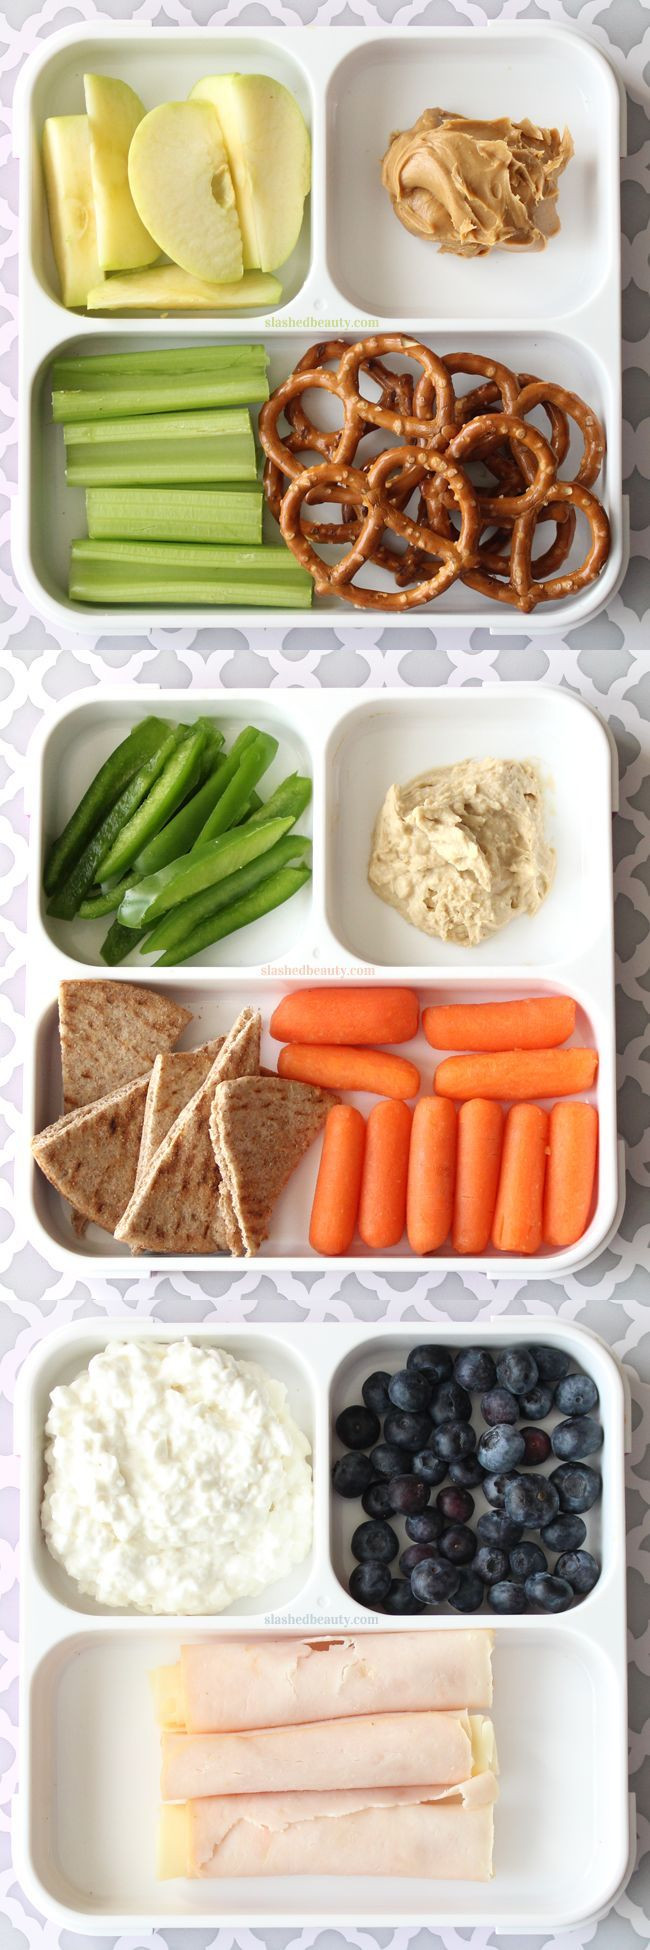 Healthy Snacks For Work  549 best images about Healthy Snacks For Kids on Pinterest